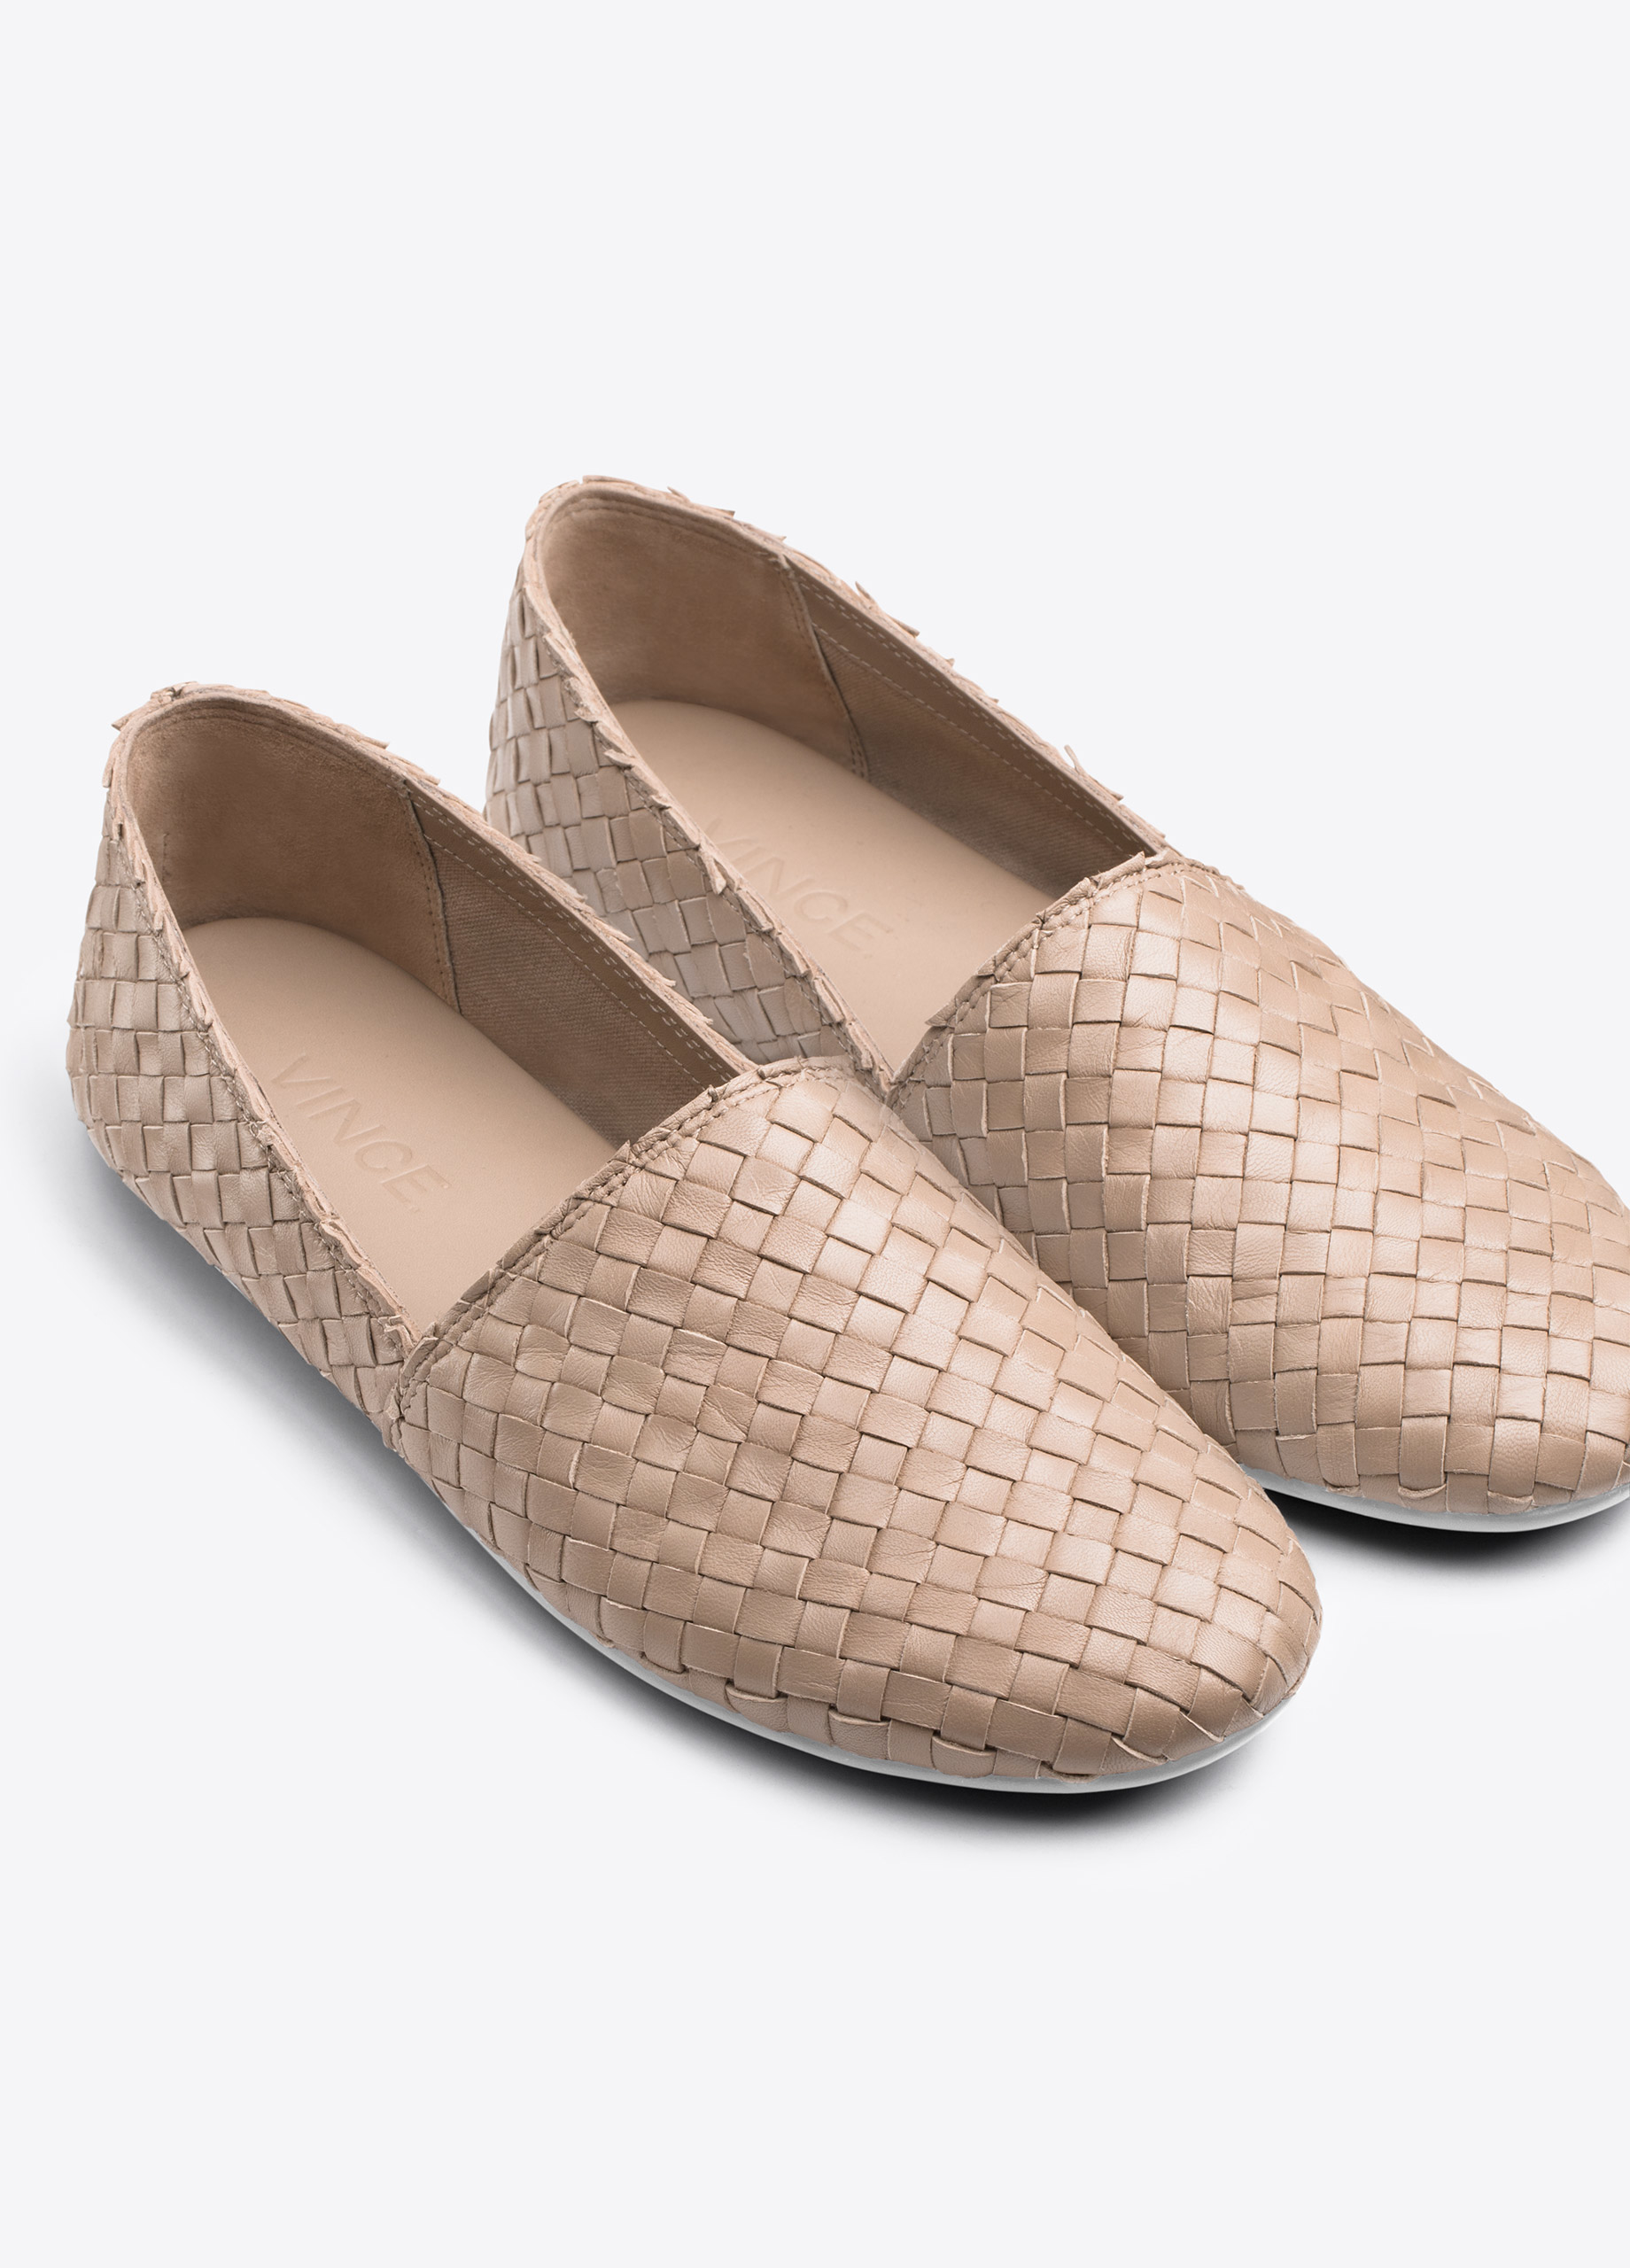 Vince Bogart Woven Leather Flats In Brown Taupe Lyst